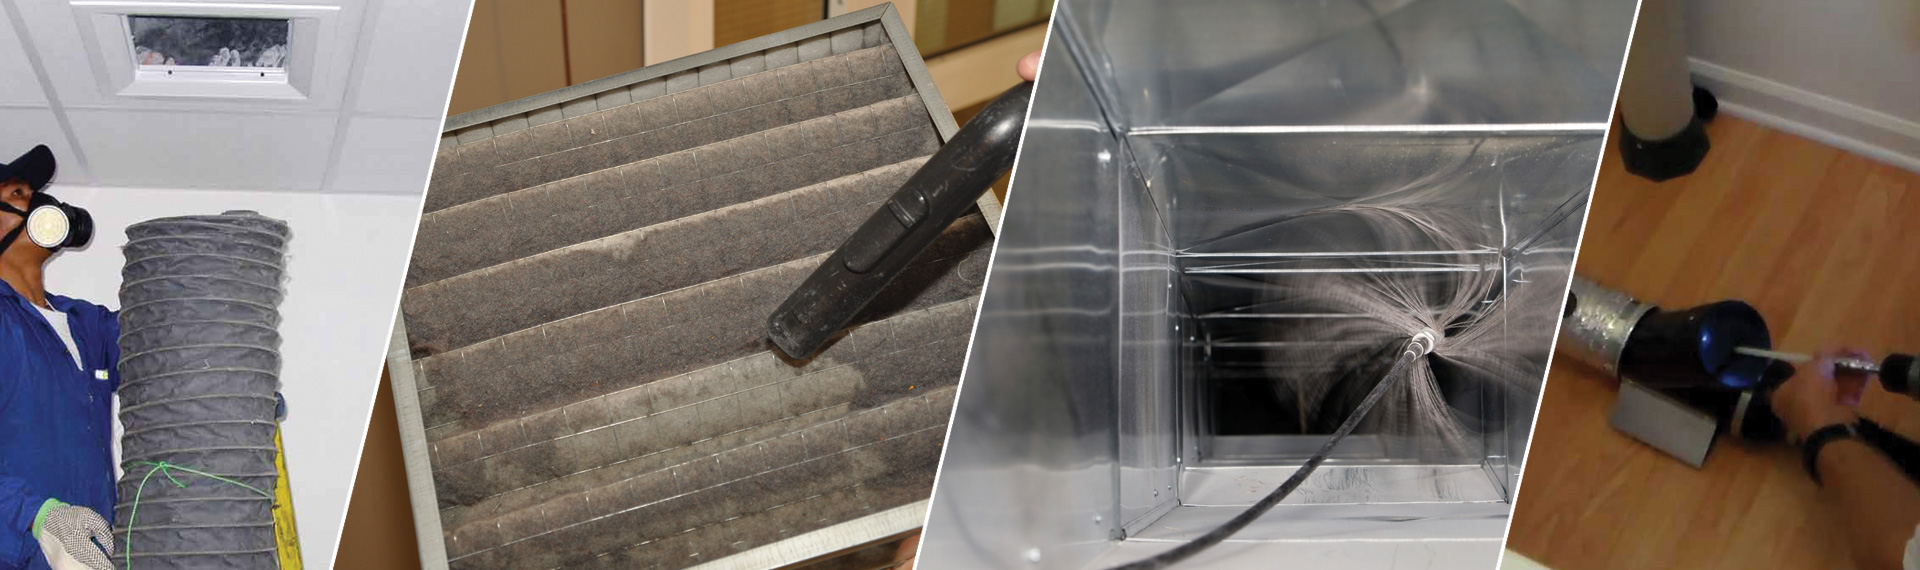 Reliable Air Duct Cleaning Los Alamitos CA